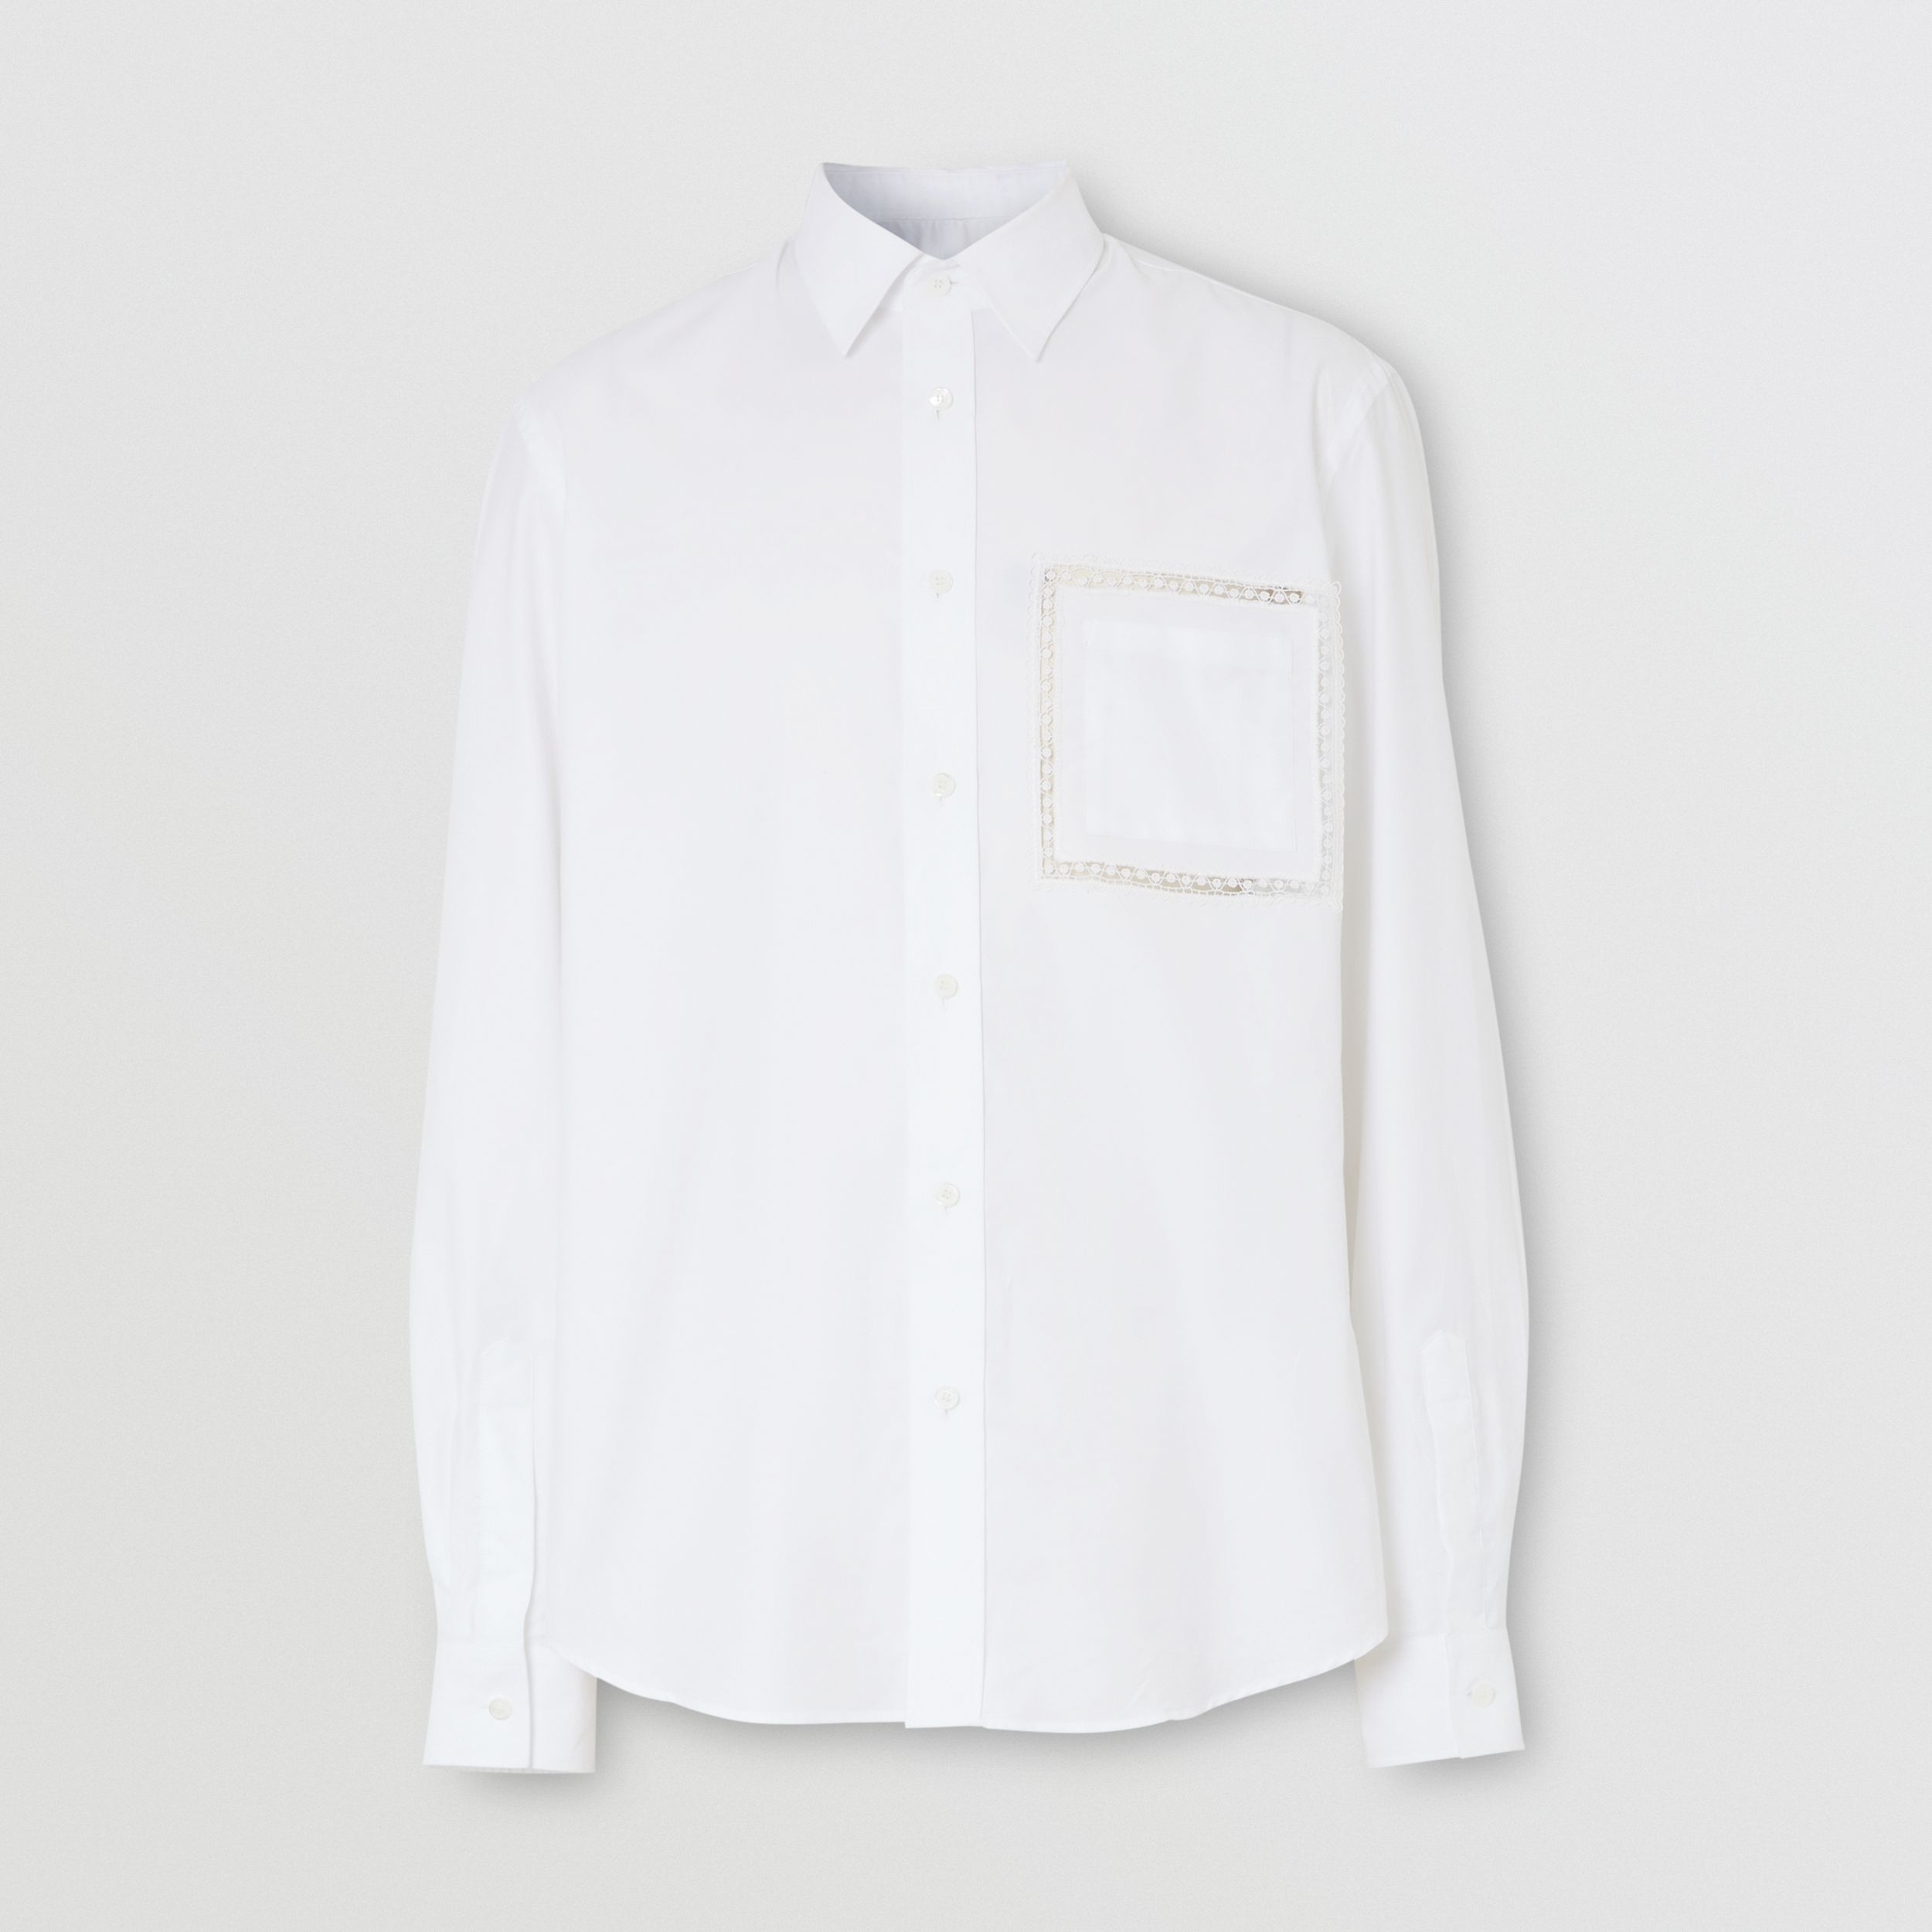 Classic Fit Lace Detail Cotton Poplin Oxford Shirt in Optic White - Men | Burberry United Kingdom - 4